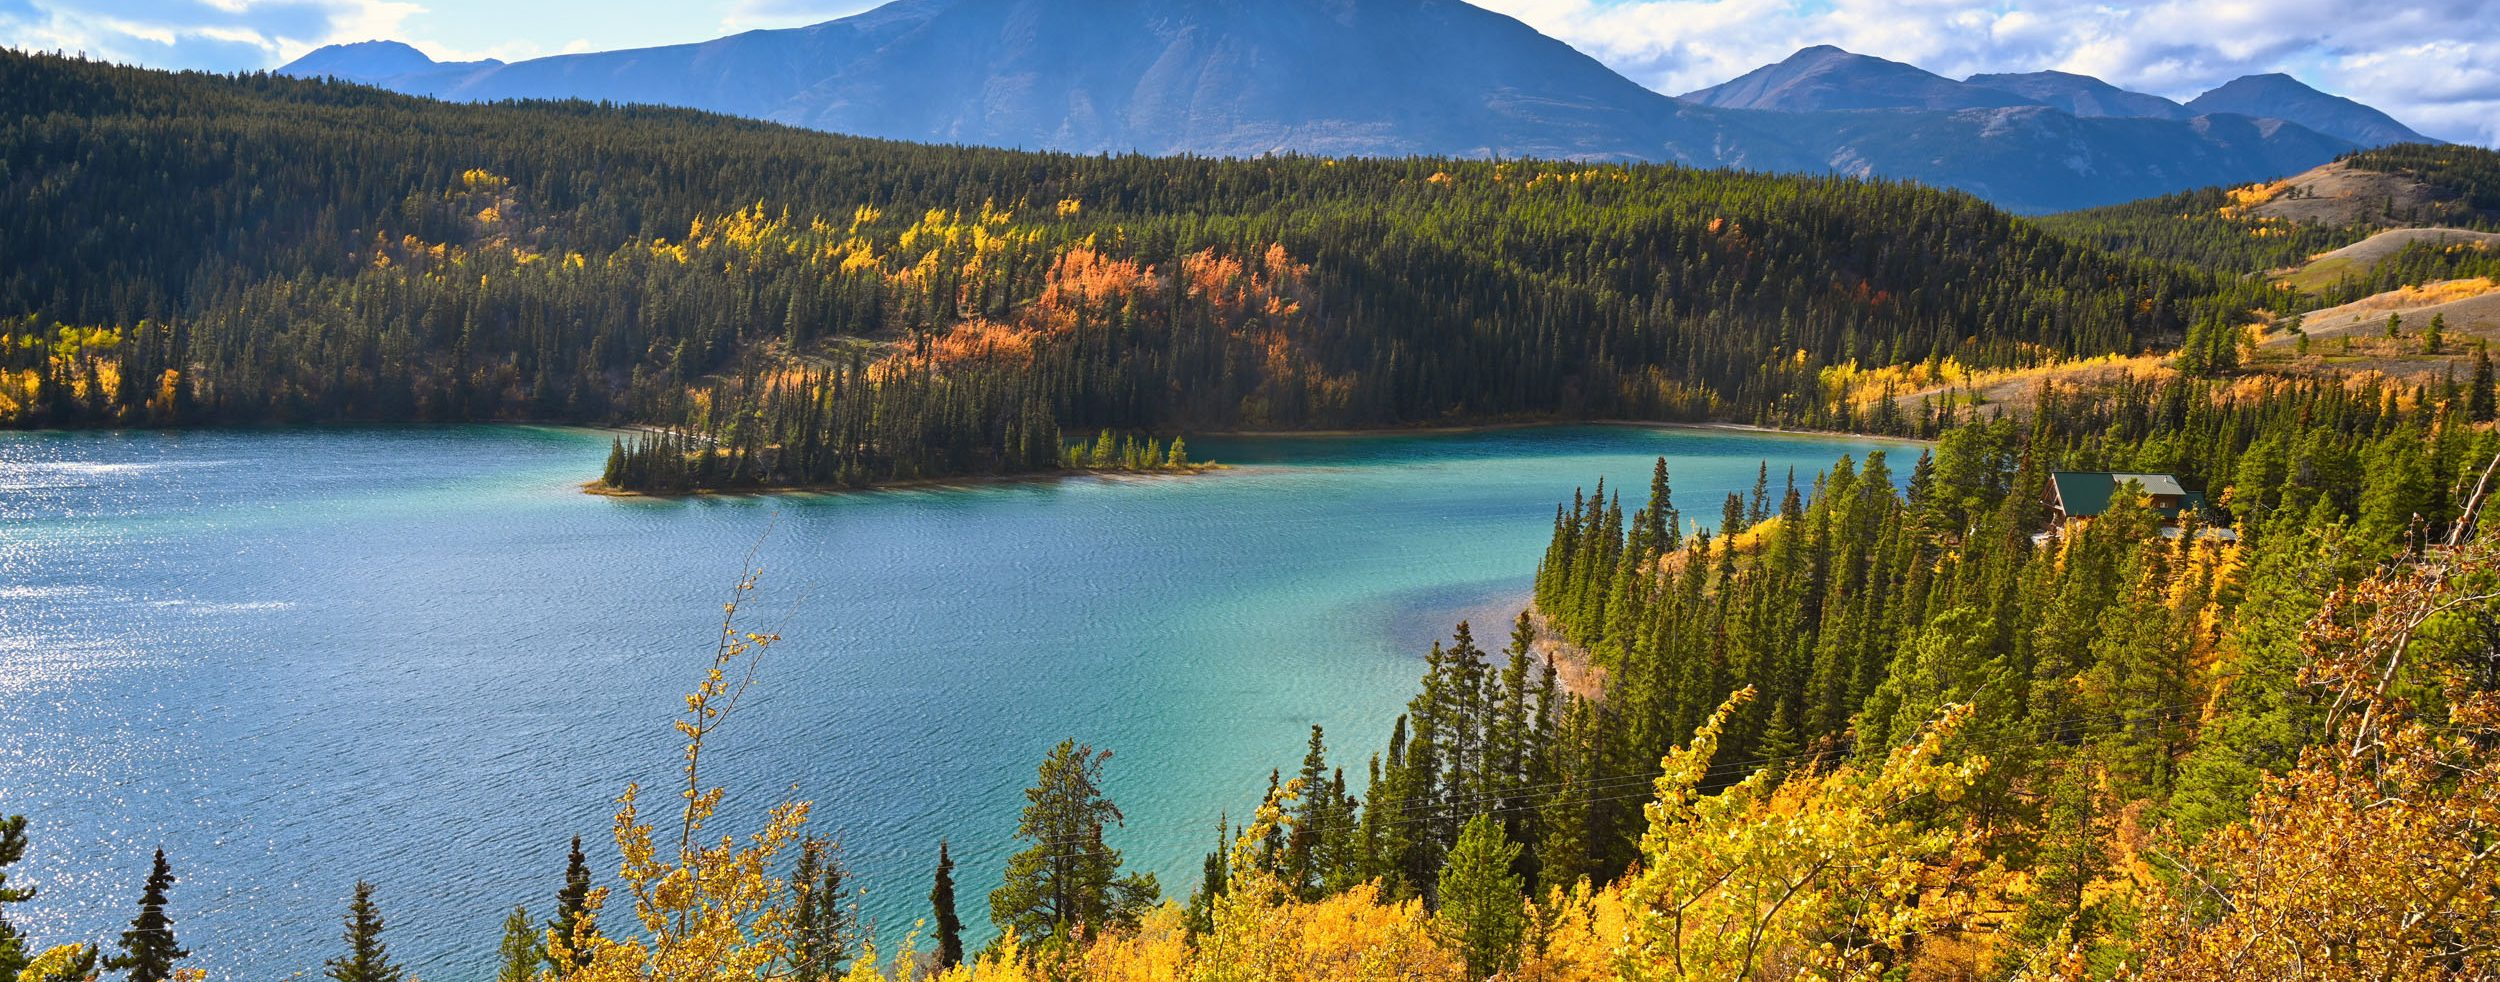 Emerald Lake bei Carcross